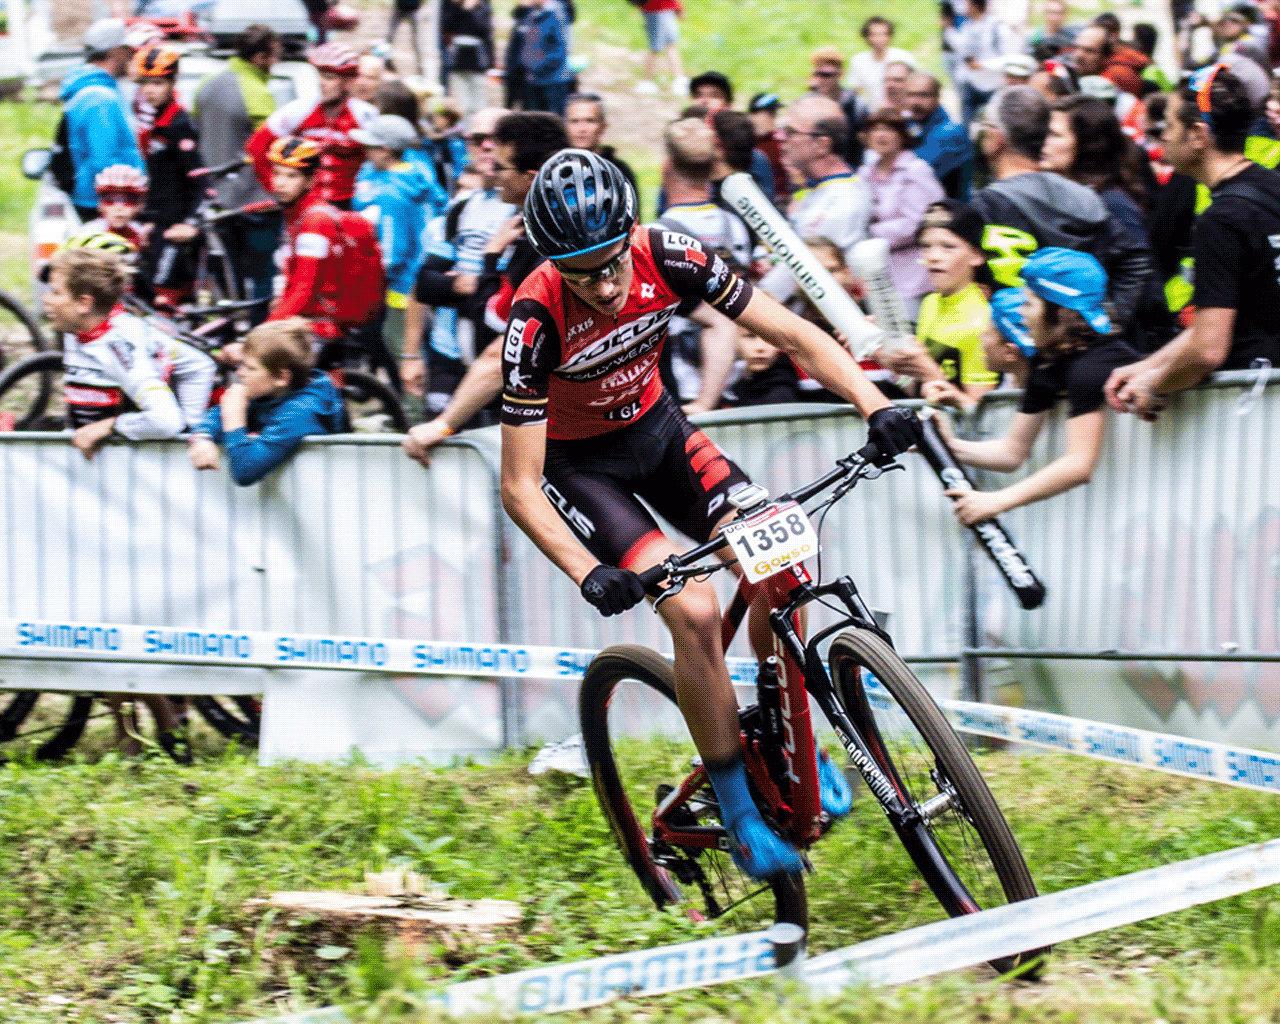 GALLERY_FOCUS_MTB_RACE